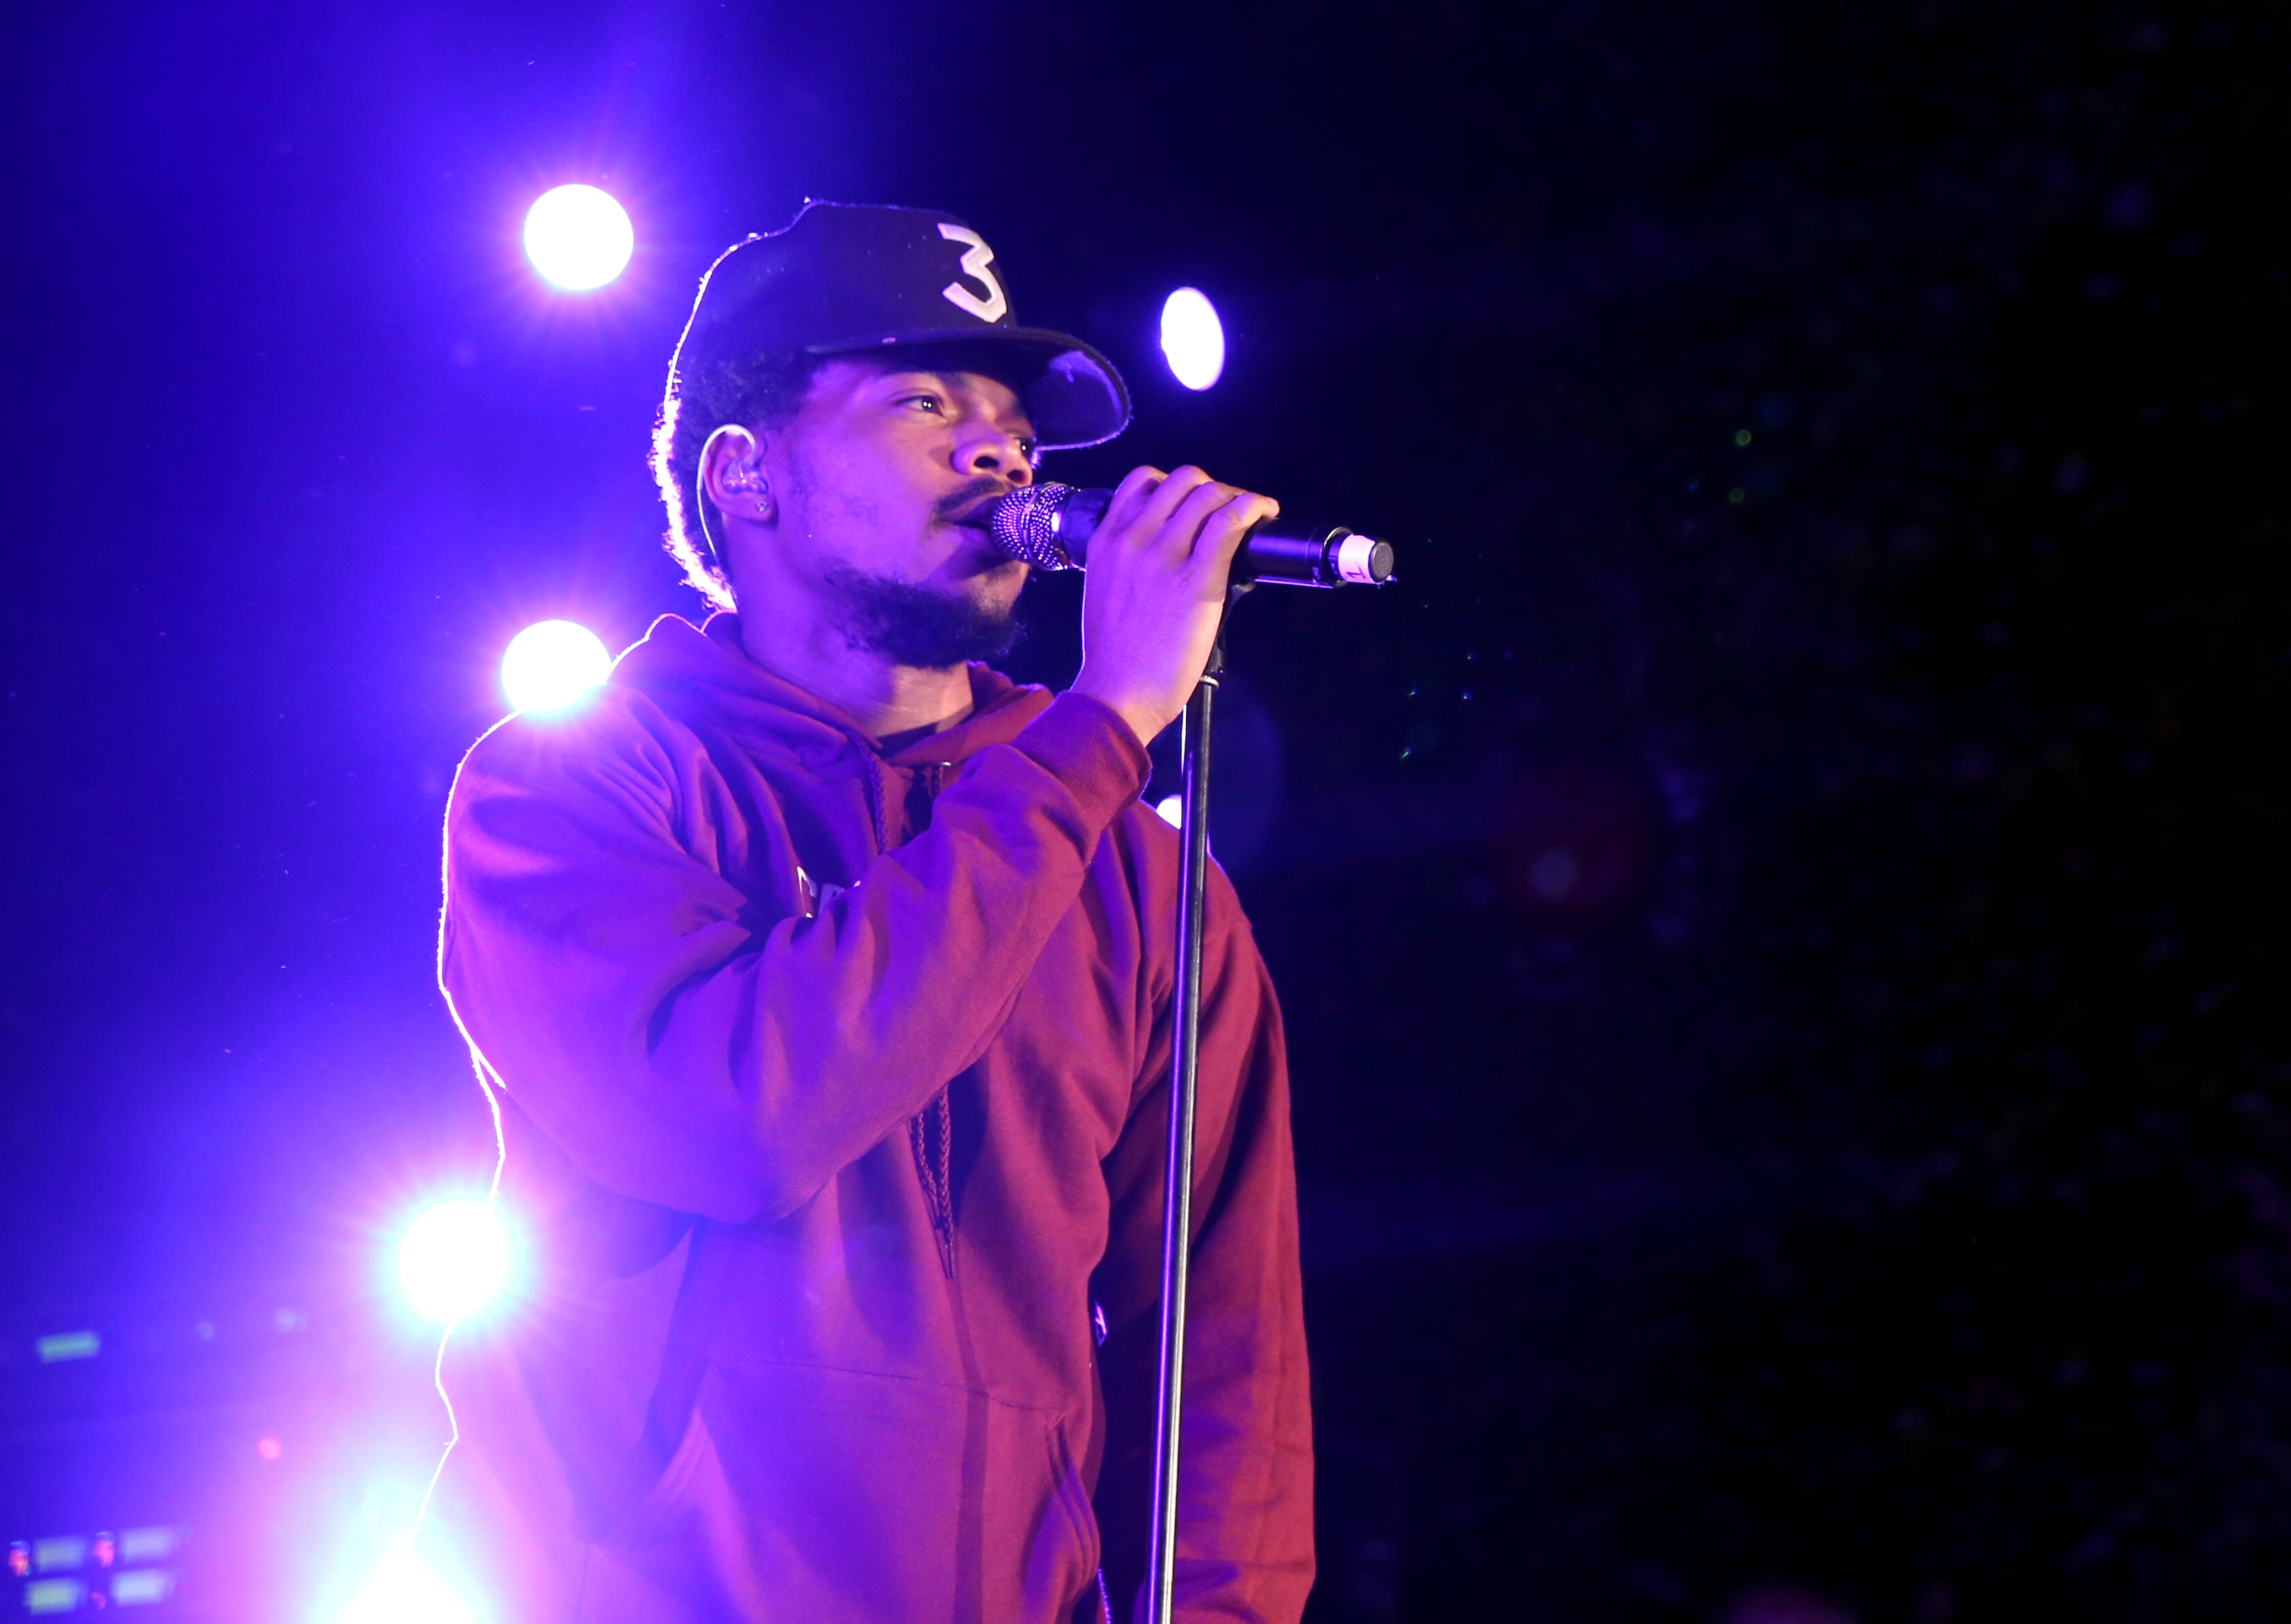 Chance the Rapper onstage